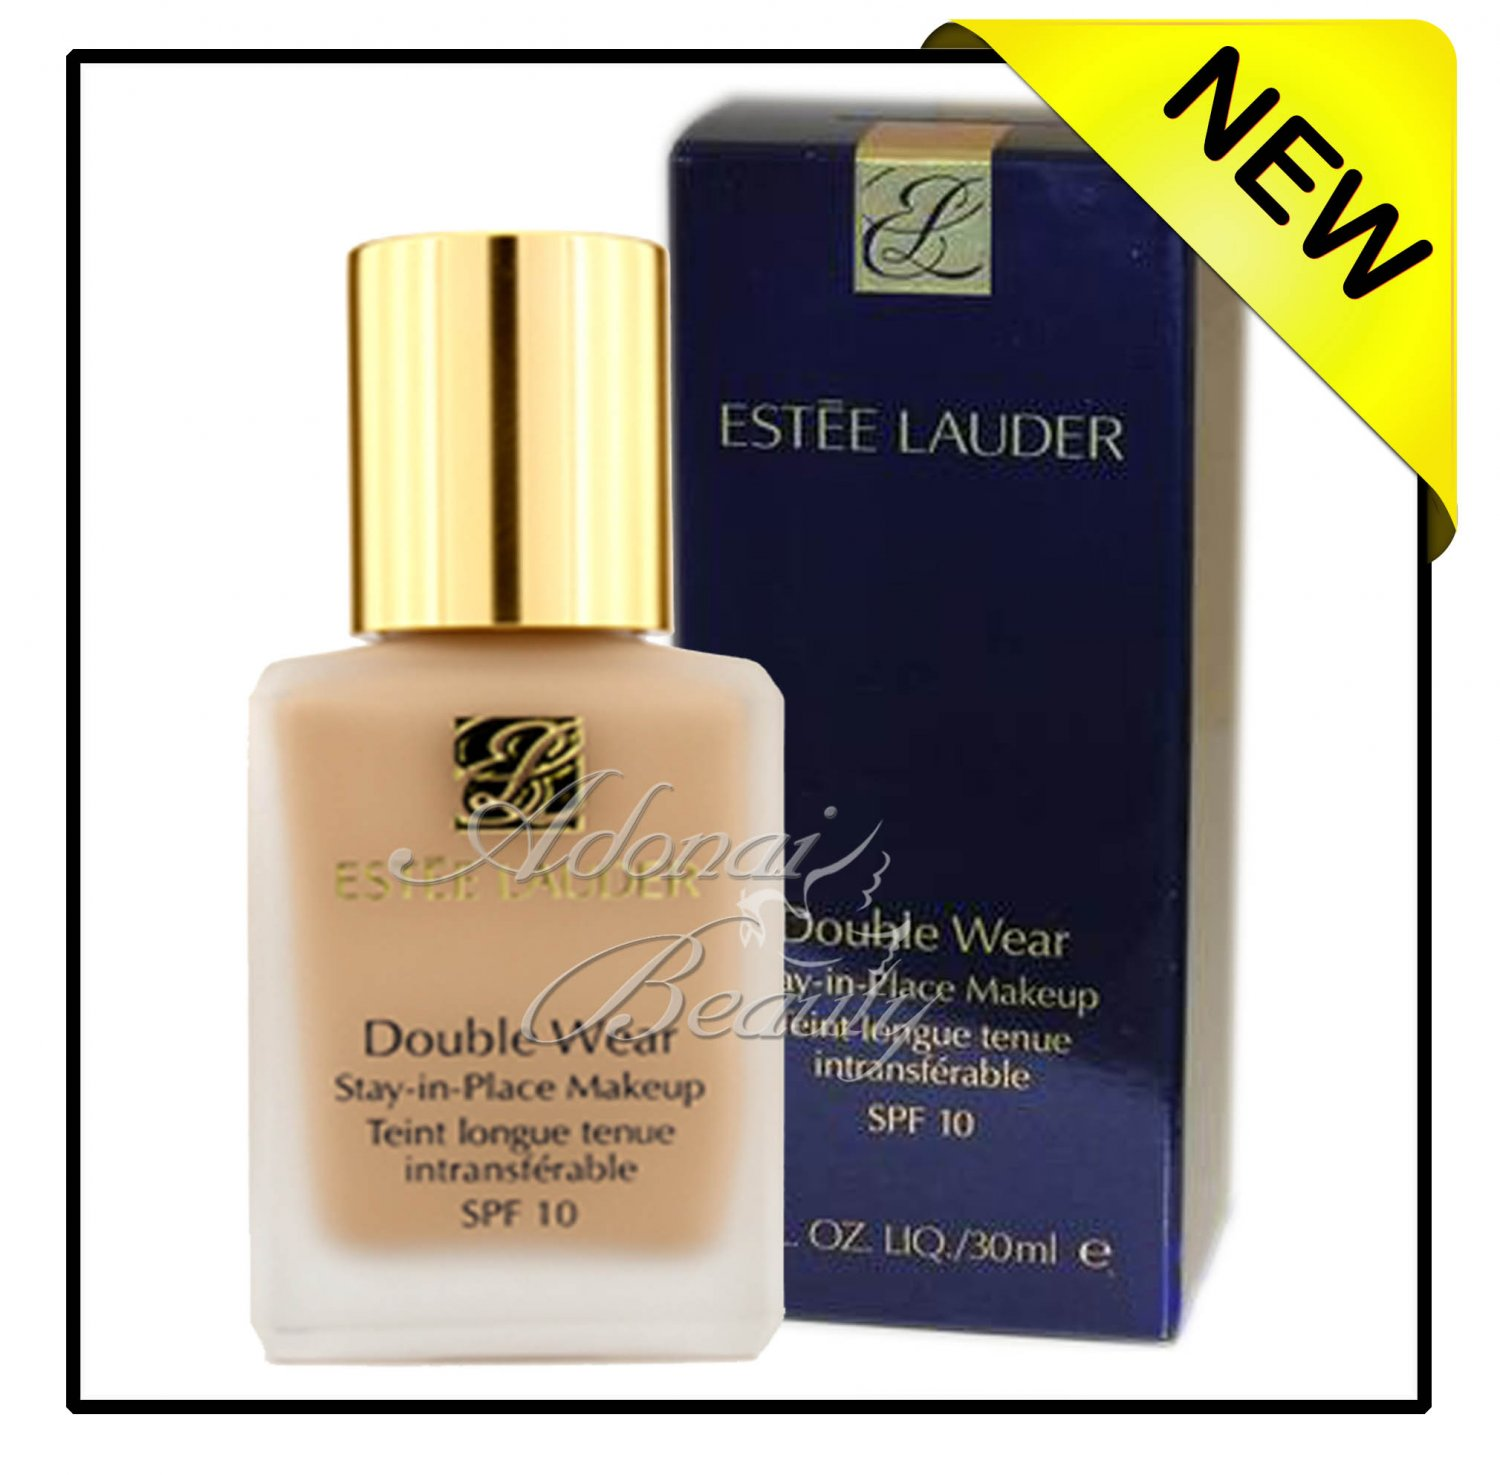 ESTEE LAUDER 02 PALE ALMOND (2C2) Double Wear Stay In Place Makeup 30ml